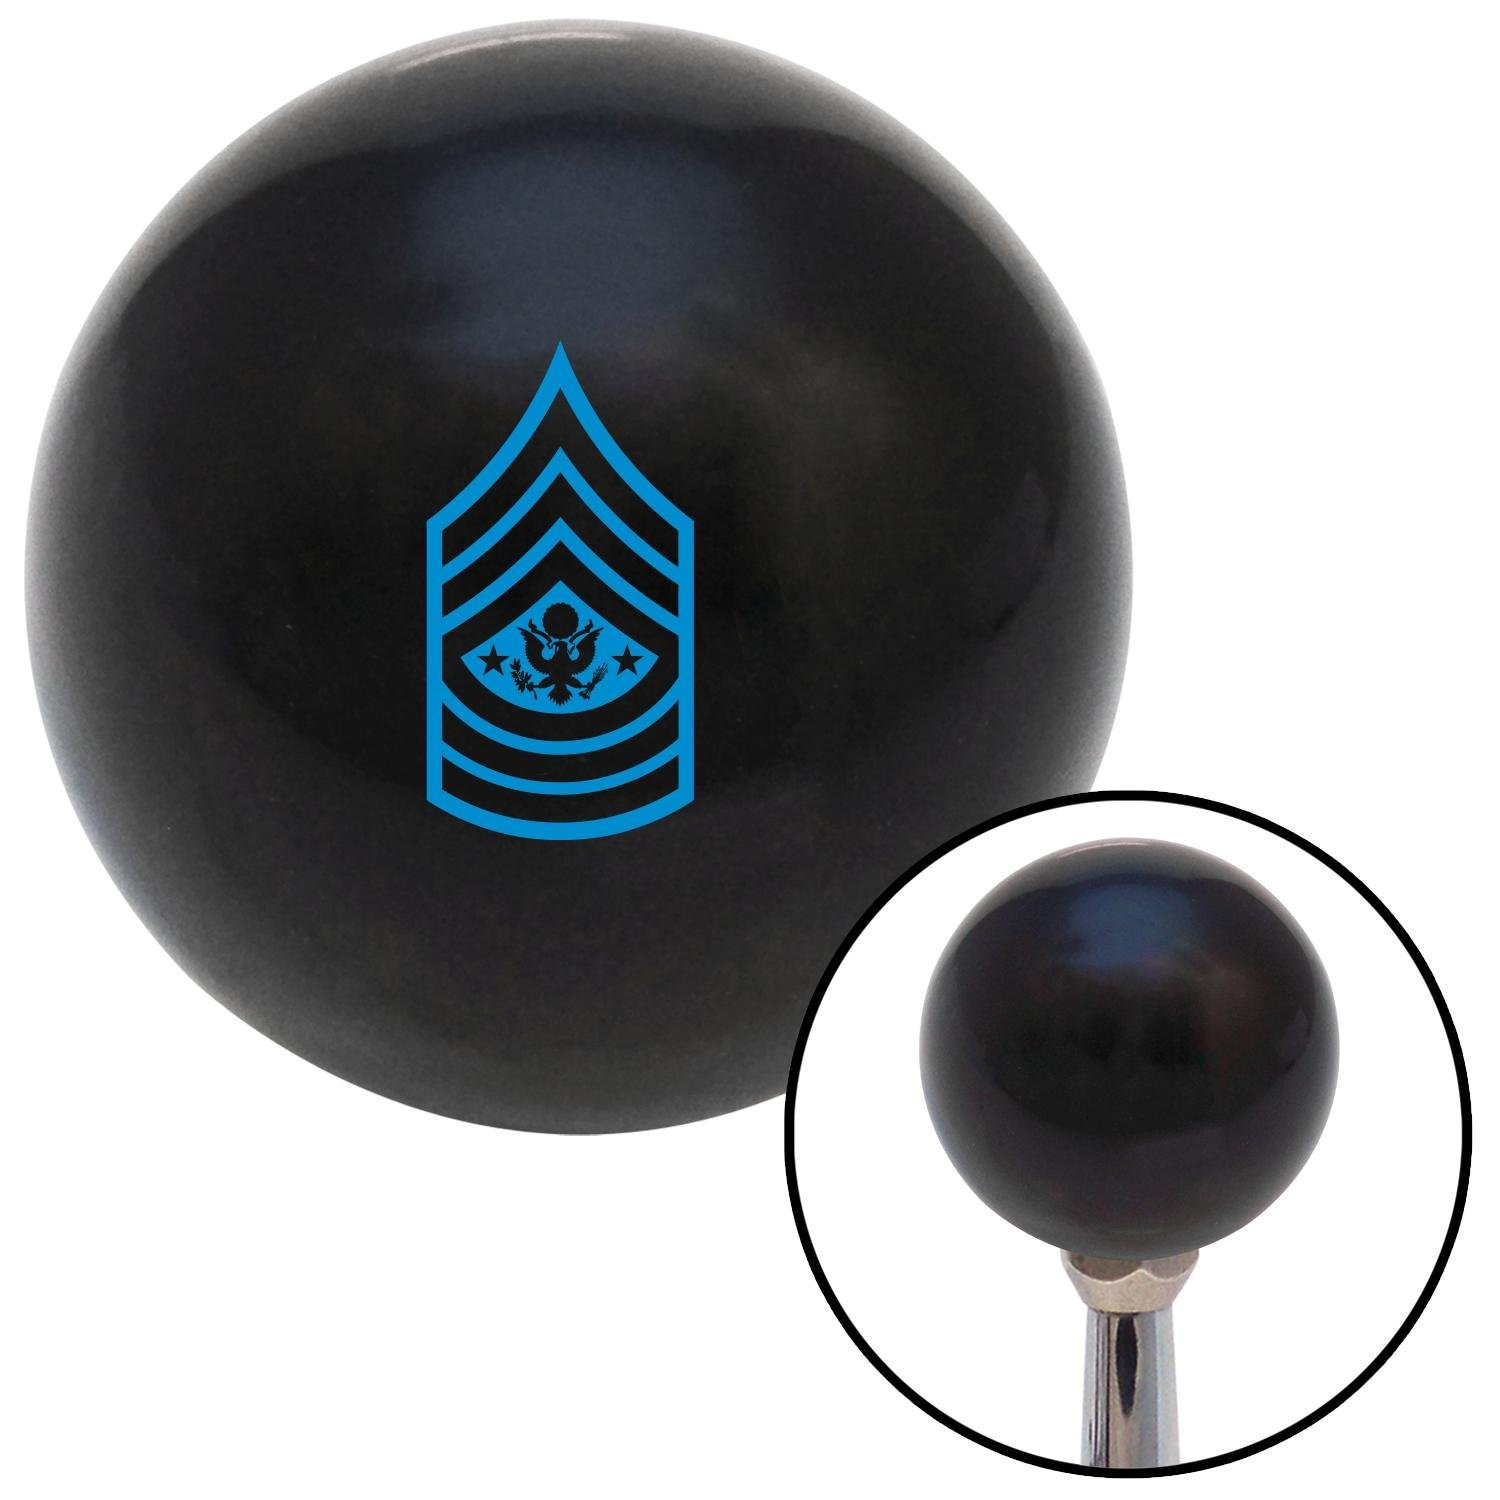 Blue Sergeant Major of The Army American Shifter 106658 Black Shift Knob with M16 x 1.5 Insert